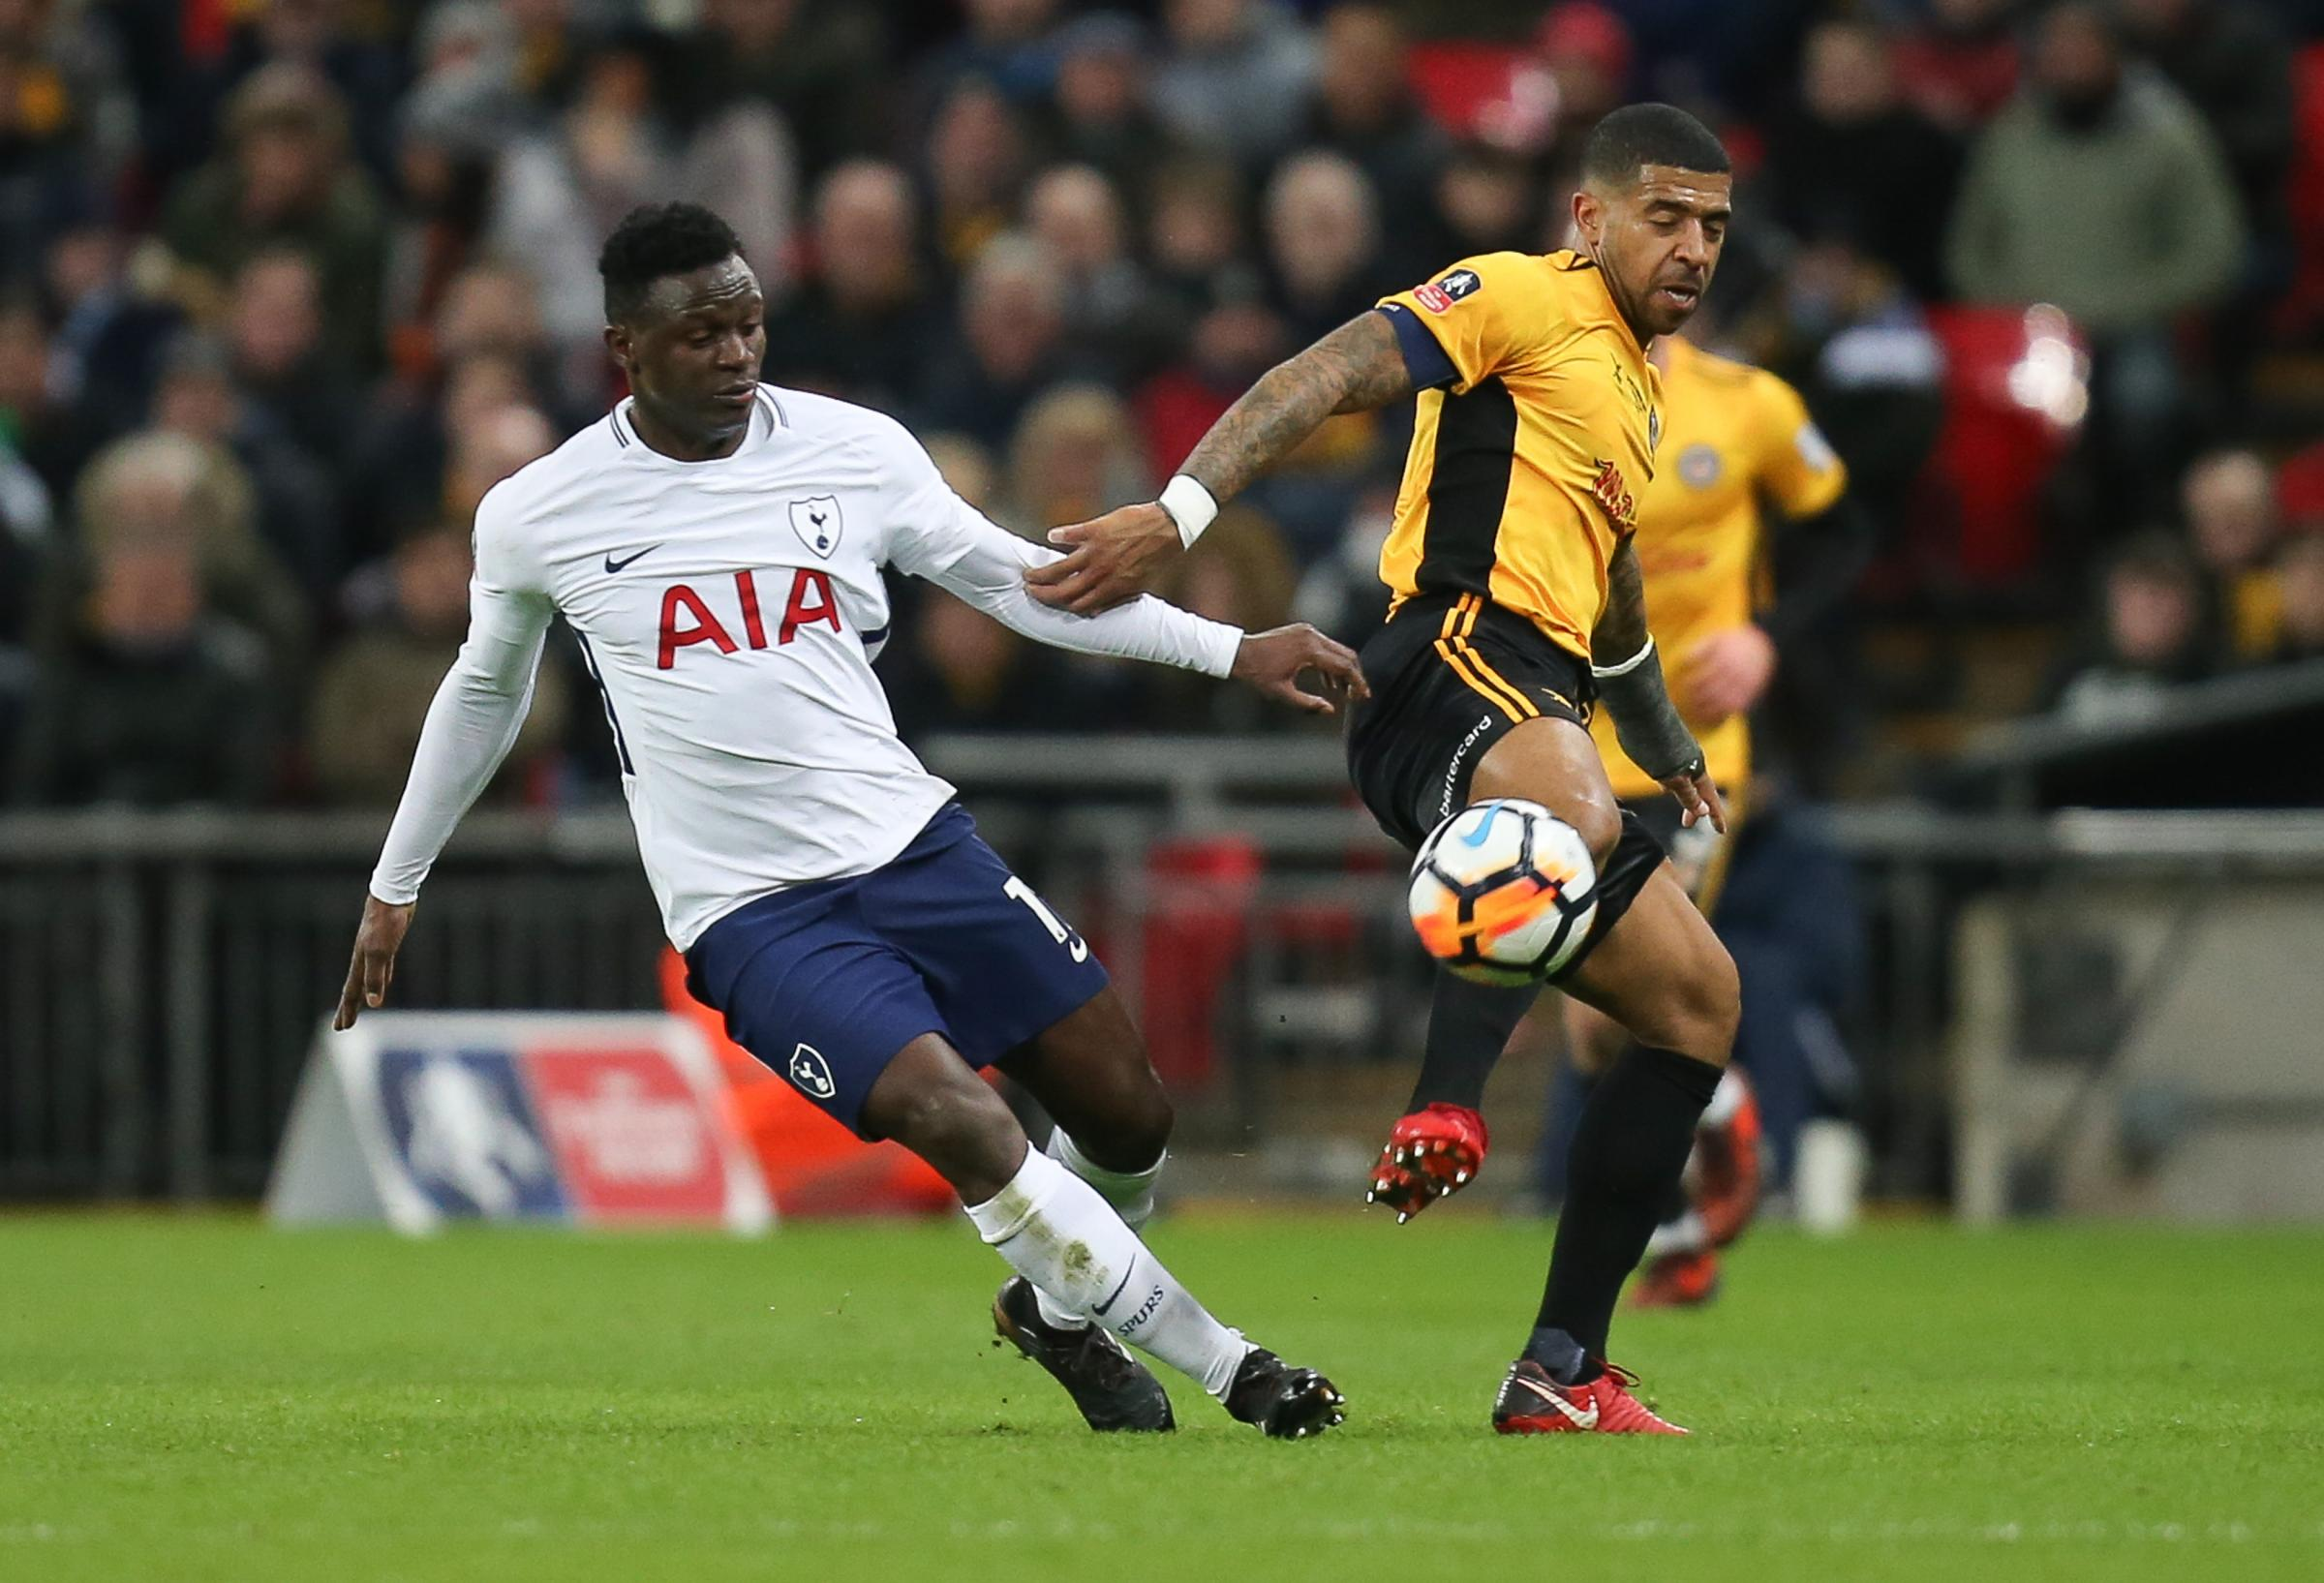 TALENT: Newport County's Joss Labadie went toe to toe with Tottenham Hotspur's Victor Wanyama in Last season's FA Cup fourth-round tie